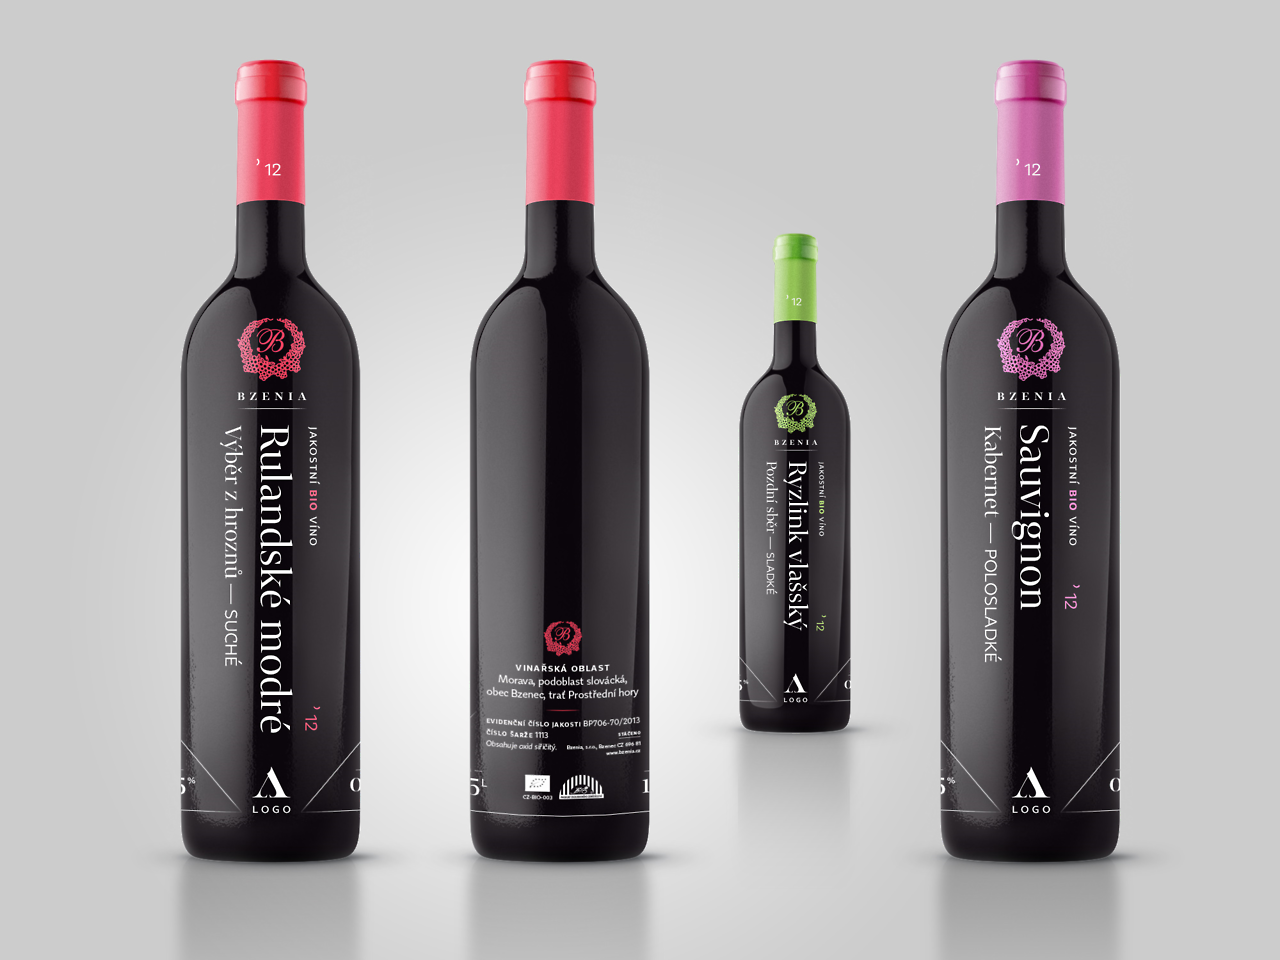 Bzenia Winery 2013 — design of a new vintage for a family operated and owned luxury winery producing organic wines